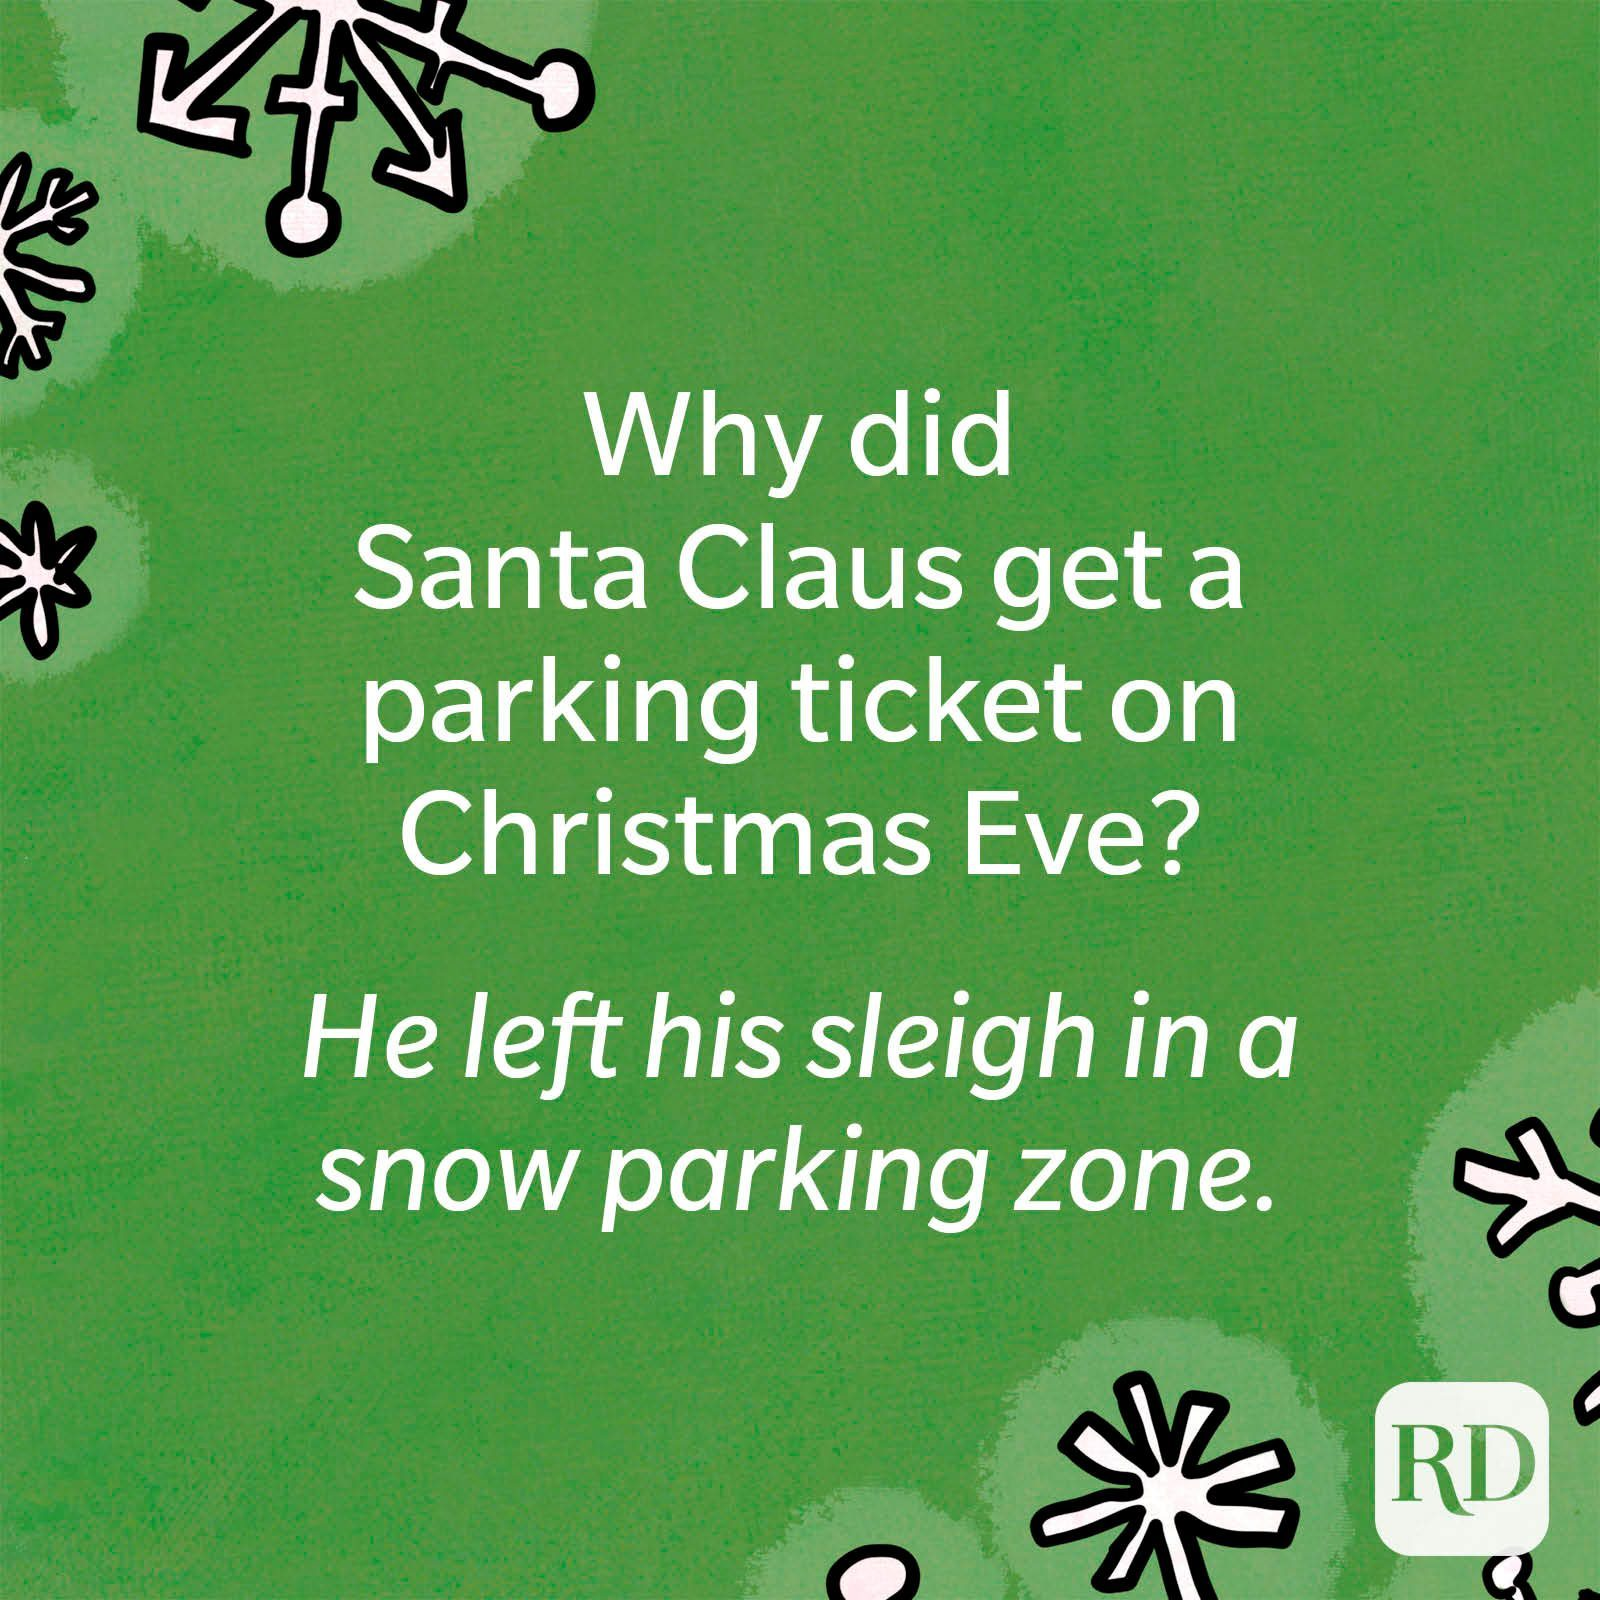 Why did Santa Claus get a parking ticket on Christmas Eve?